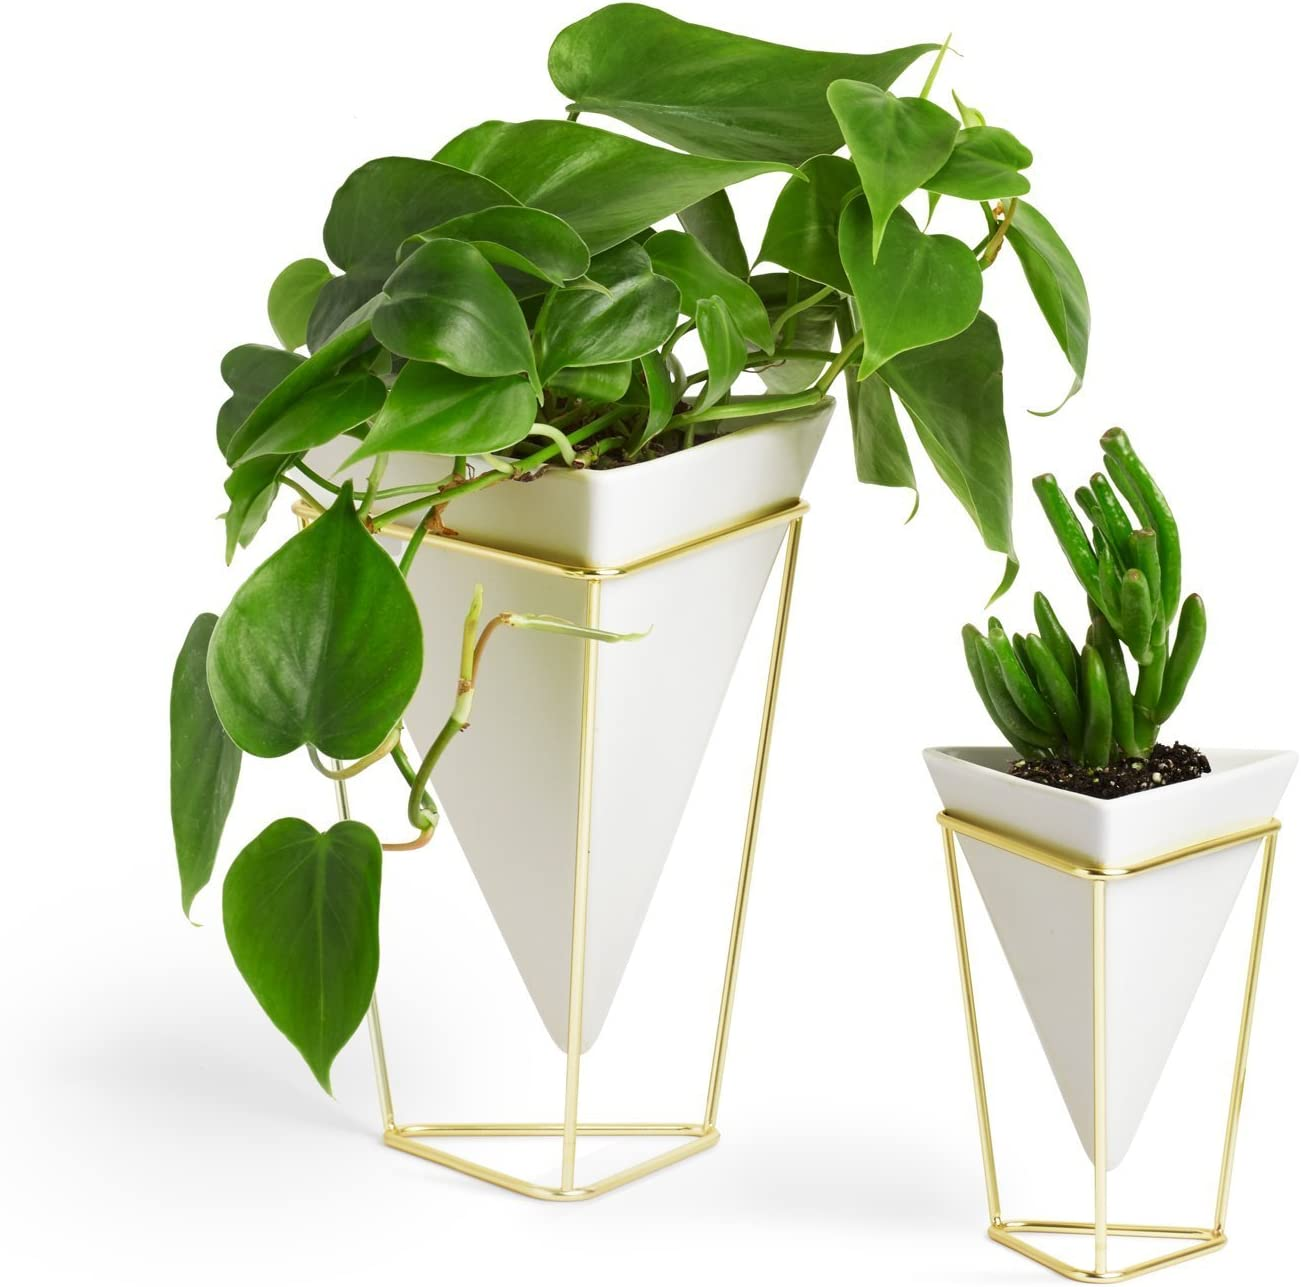 Umbra Trigg Desktop Planter Vase & Geometric Container - Great For Succulent Plants, Air Plant, Mini Cactus, Faux Plants and More, White Ceramic/Brass (Set of 2) (Renewed)